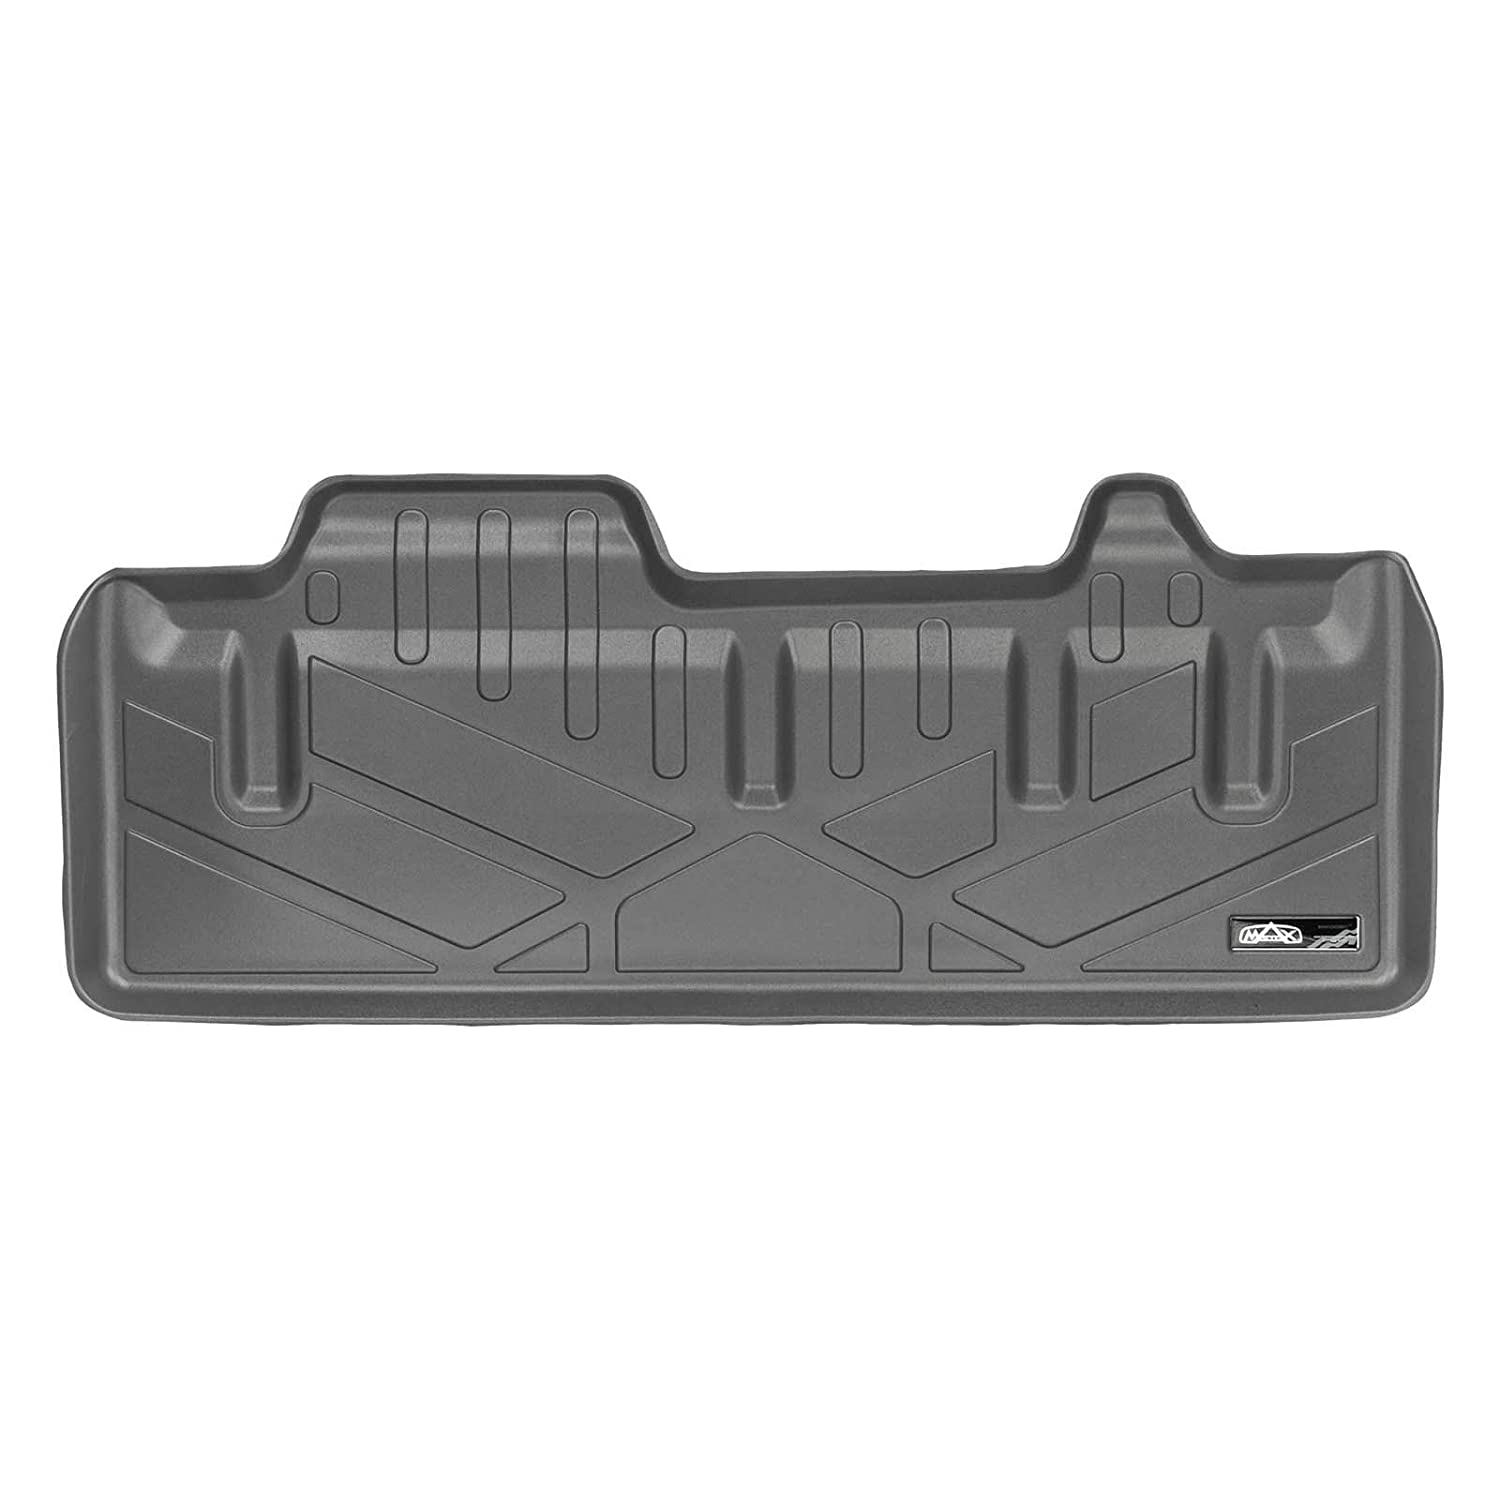 SMARTLINER Cargo Trunk Liner Floor Mat Behind 3rd Row Grey for 2011-2019 Toyota Sienna with Power Folding 3rd Row Seats